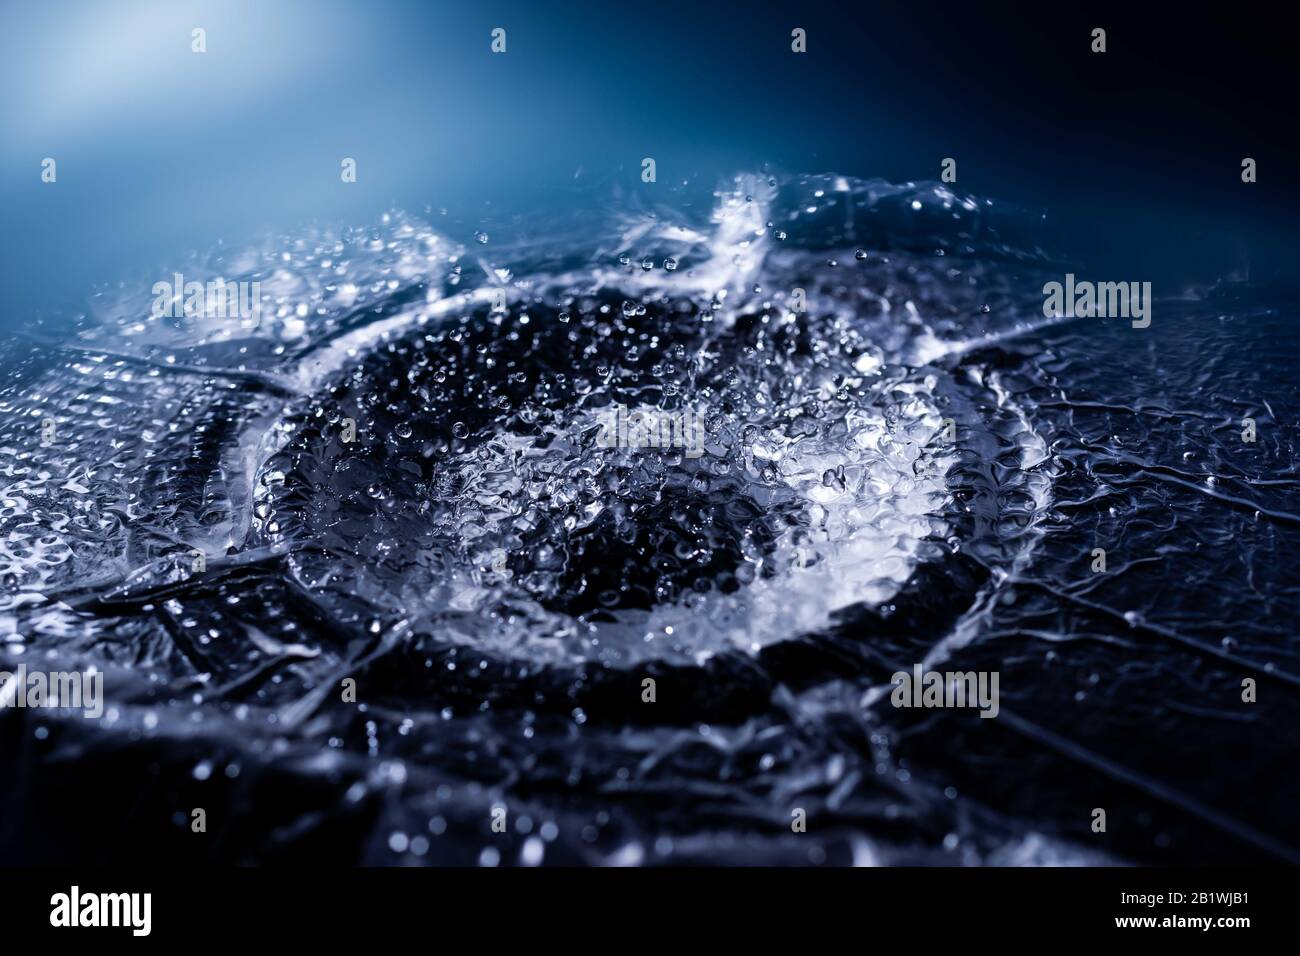 Water drops splashing on acoustic membrane. A lot of drops in air. High frequency of sound waves. Water cloud small drops. Frozen time shot. Stock Photo